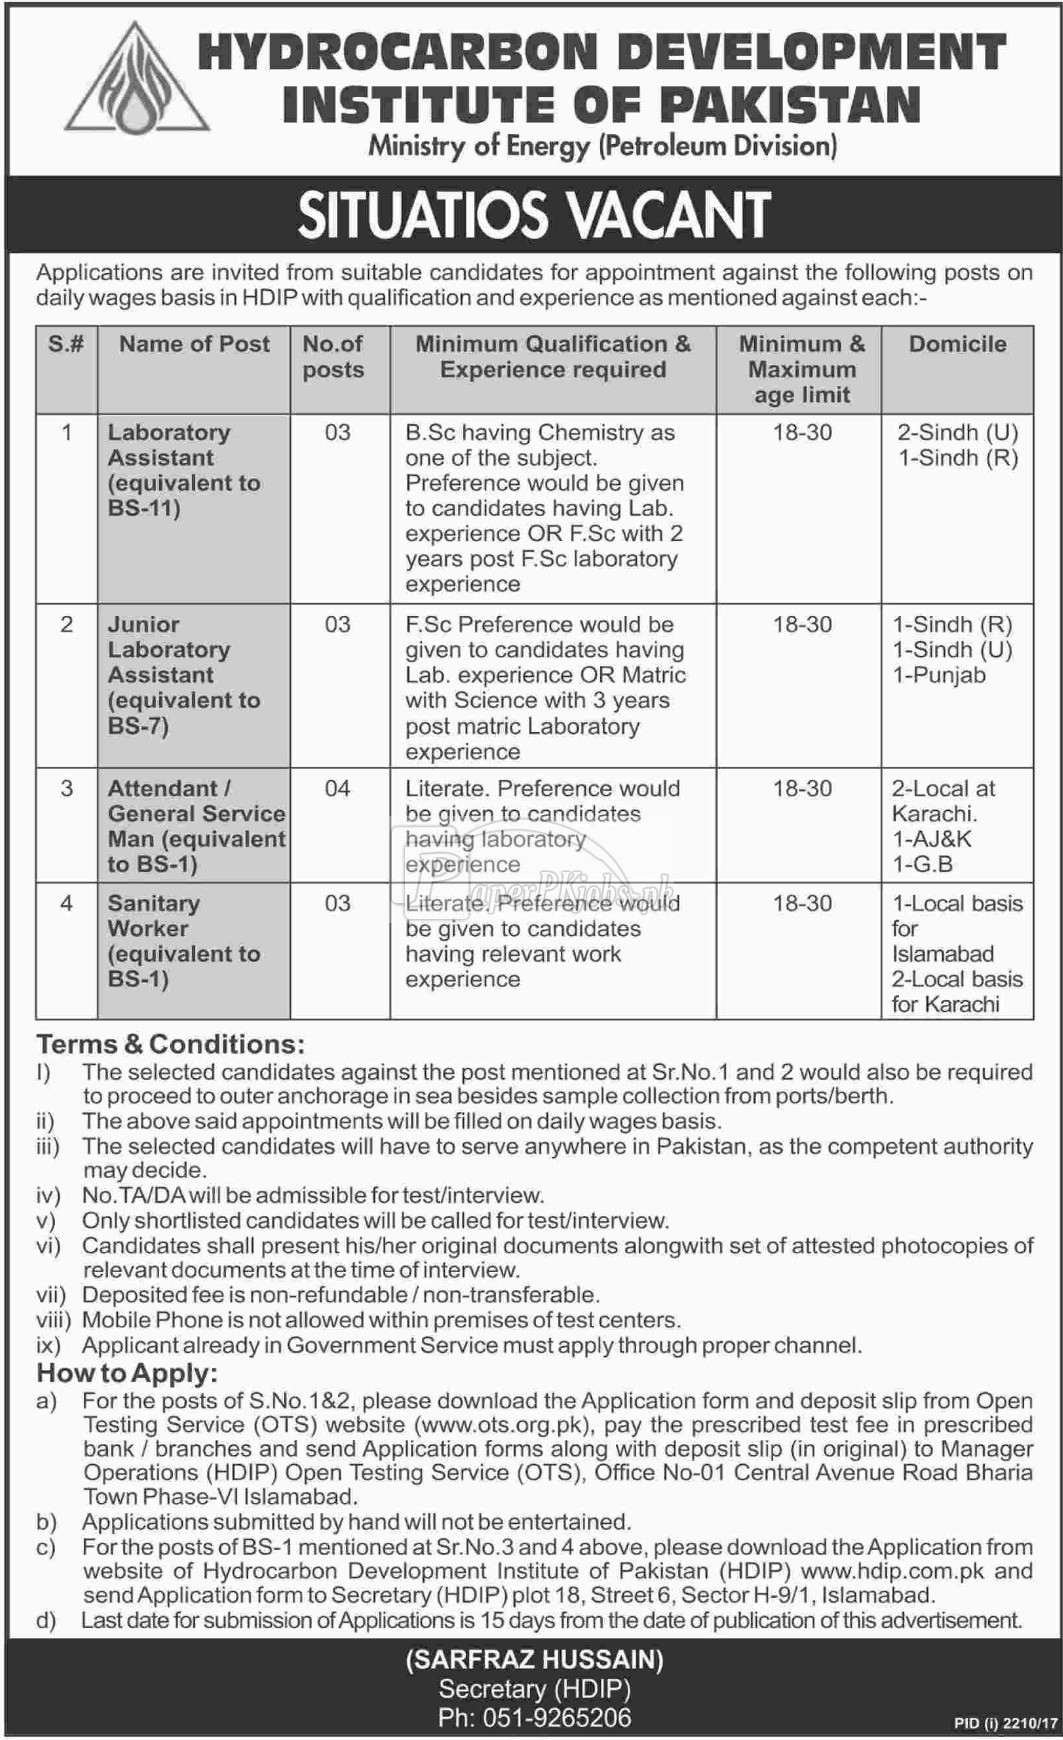 HDIP Ministry of Energy Islamabad Jobs 2017